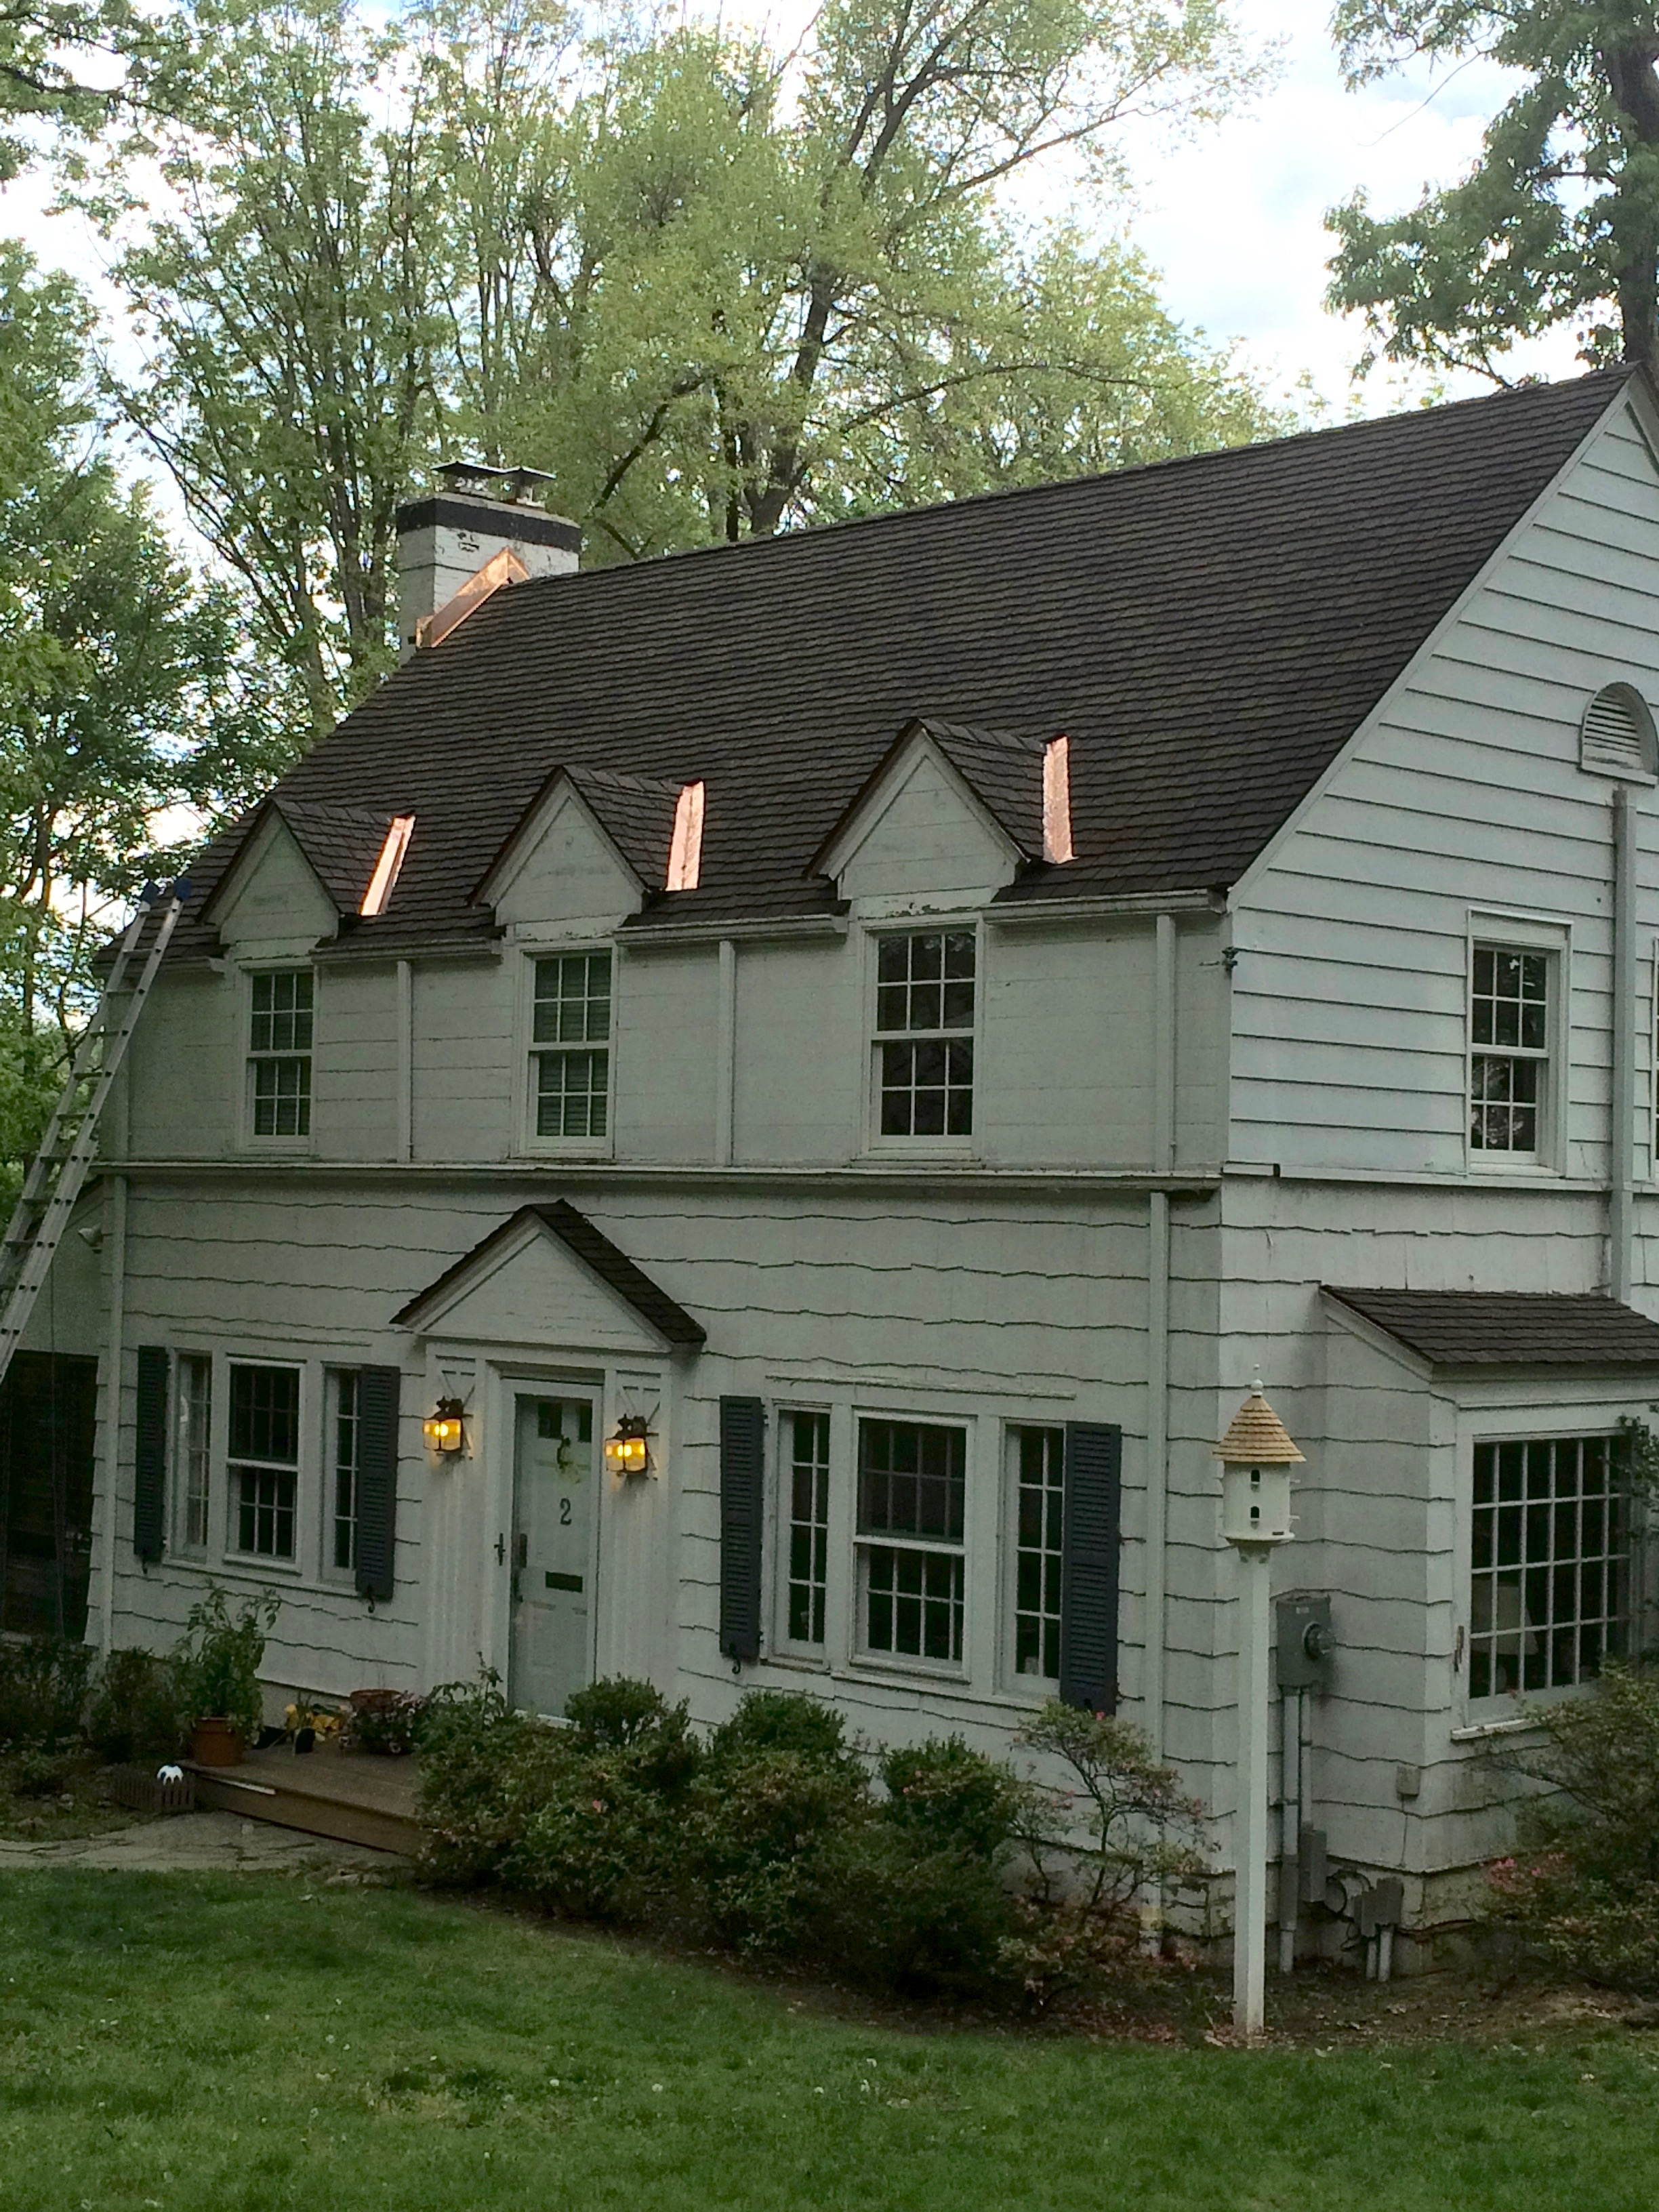 New Gaf Glenwood Lifetime Designer Shingle Roof In Essex